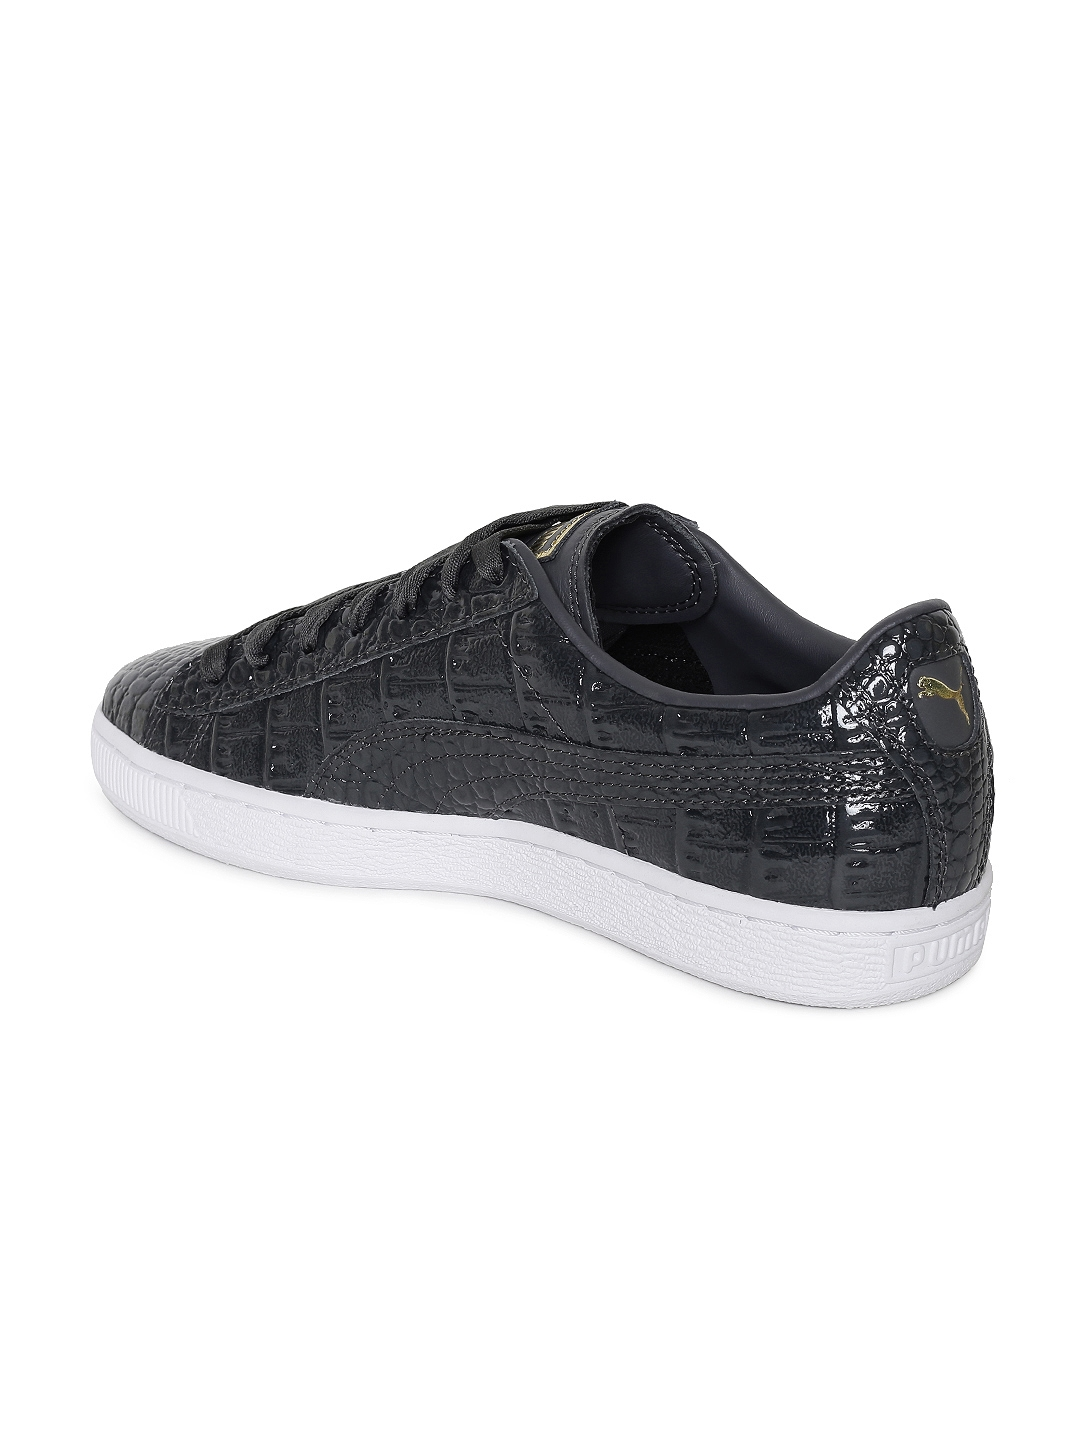 12df4fd206883e Buy Puma Women Black Textured Basket Exotic Lux Leather Sneakers ...